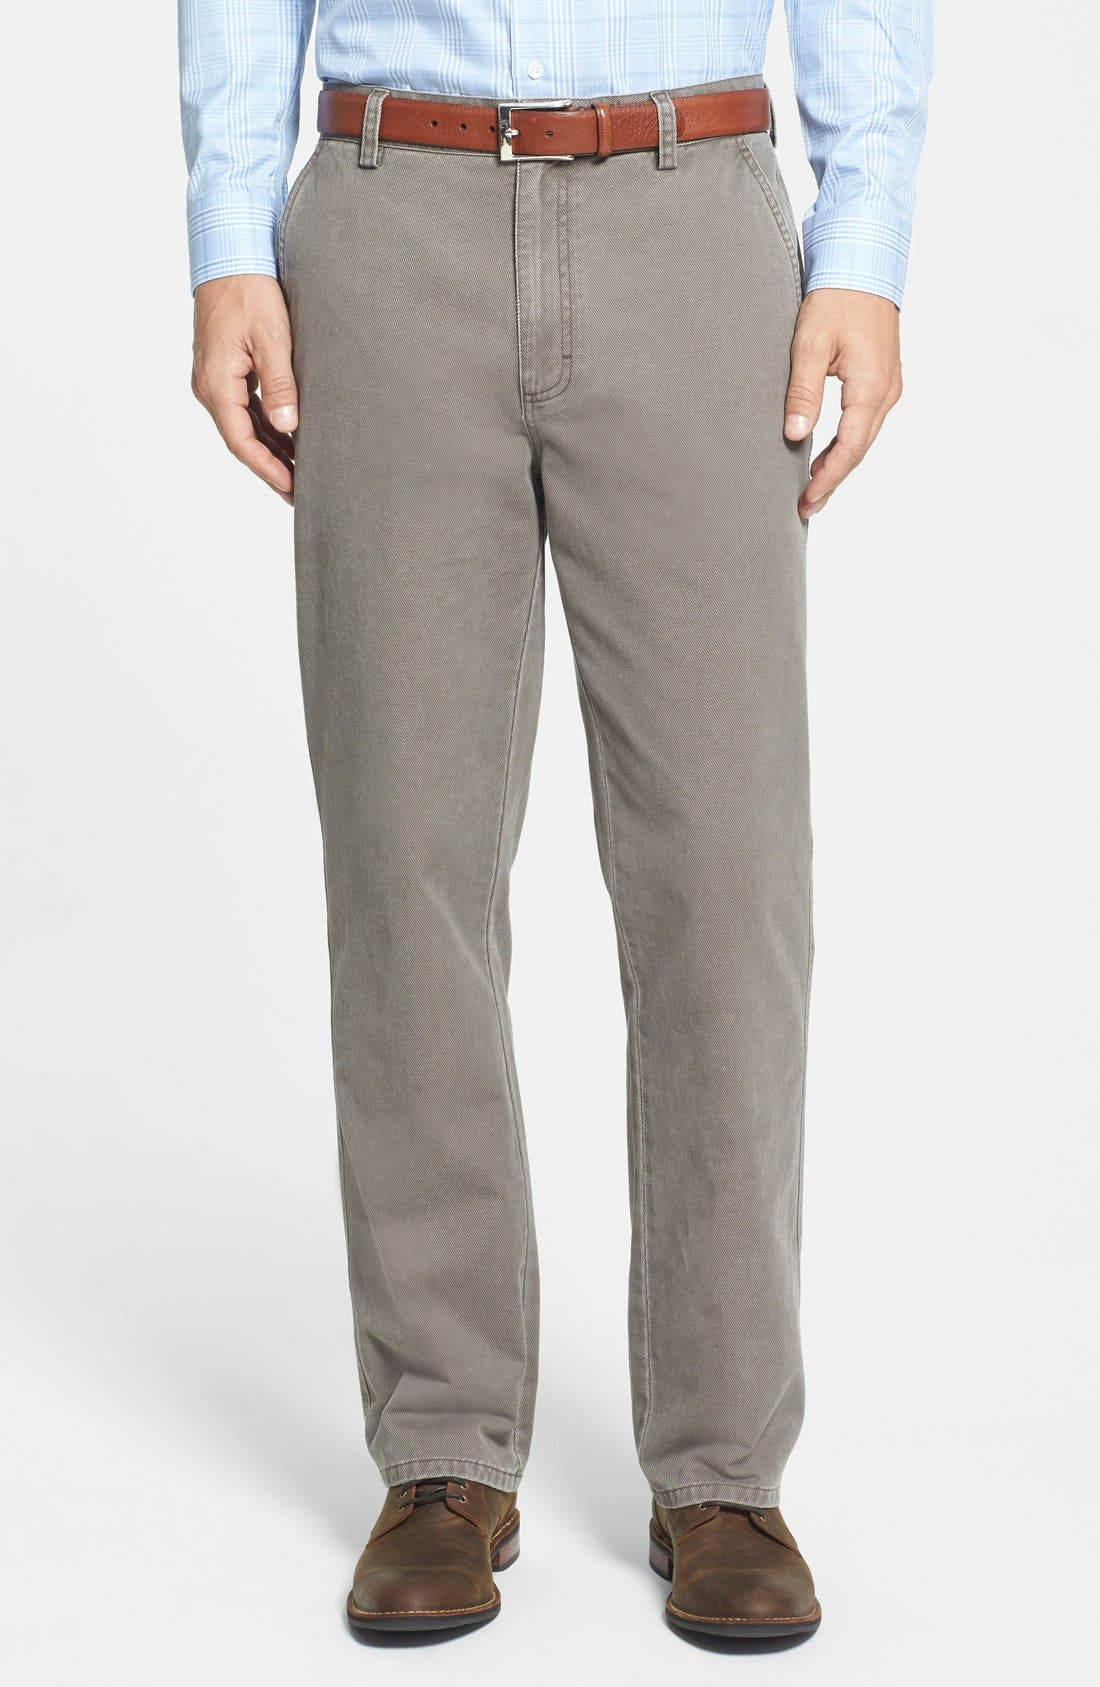 Cutter & Buck Curtis Flat Front Five-Pocket Cotton Twill Pants